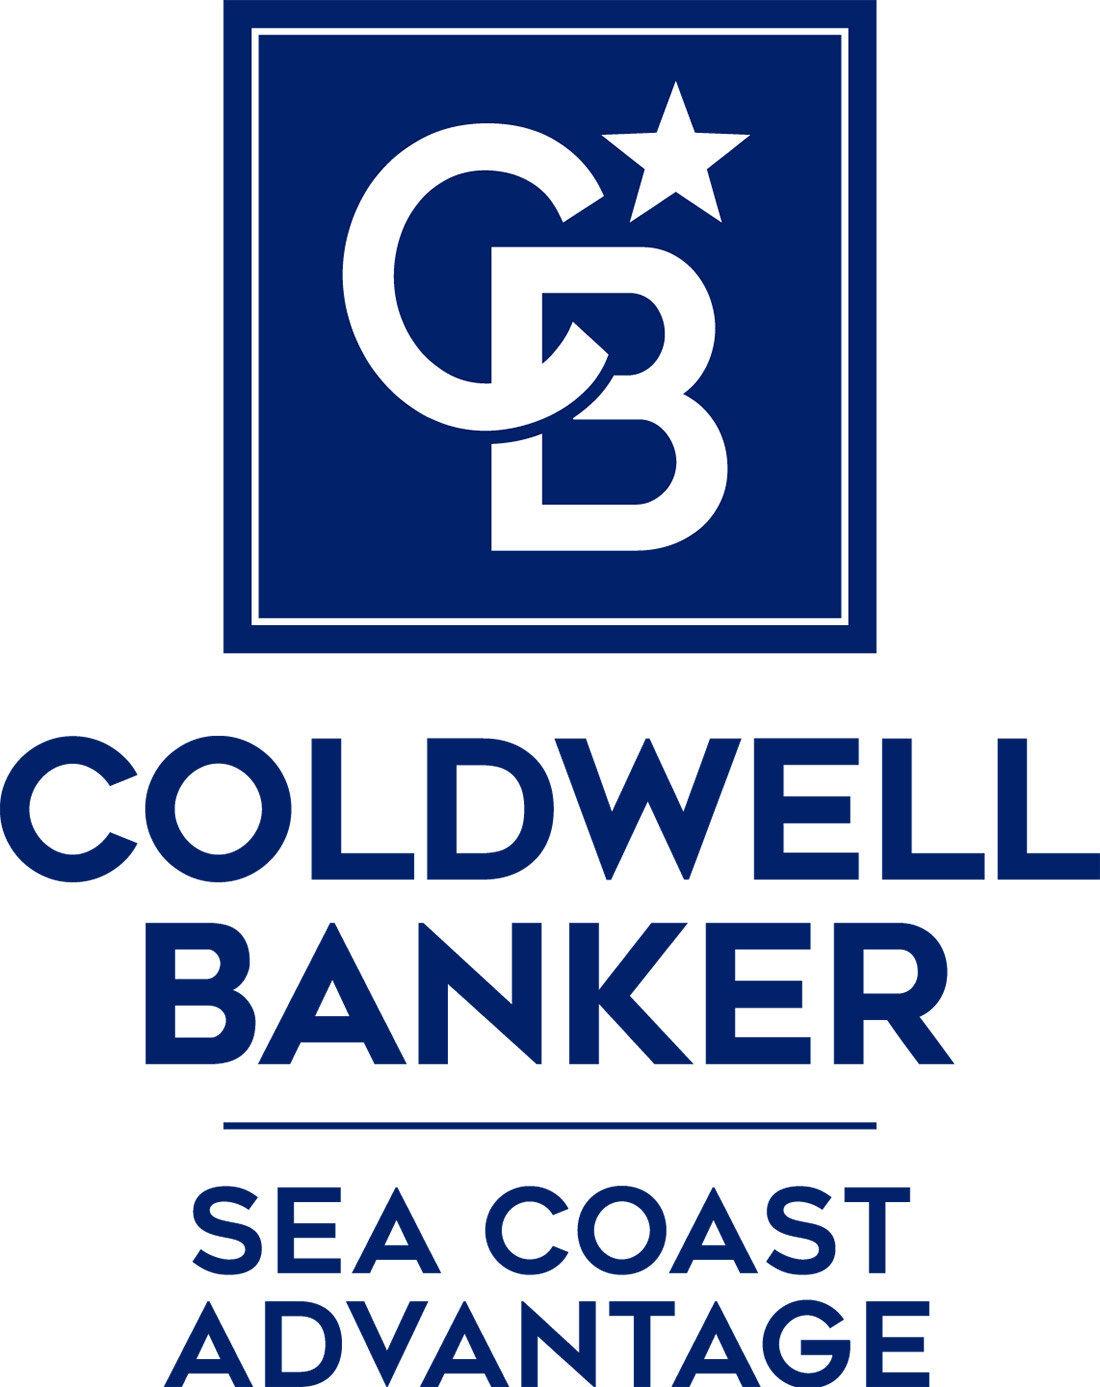 Dave Harney - Coldwell Banker Sea Coast Advantage Realty